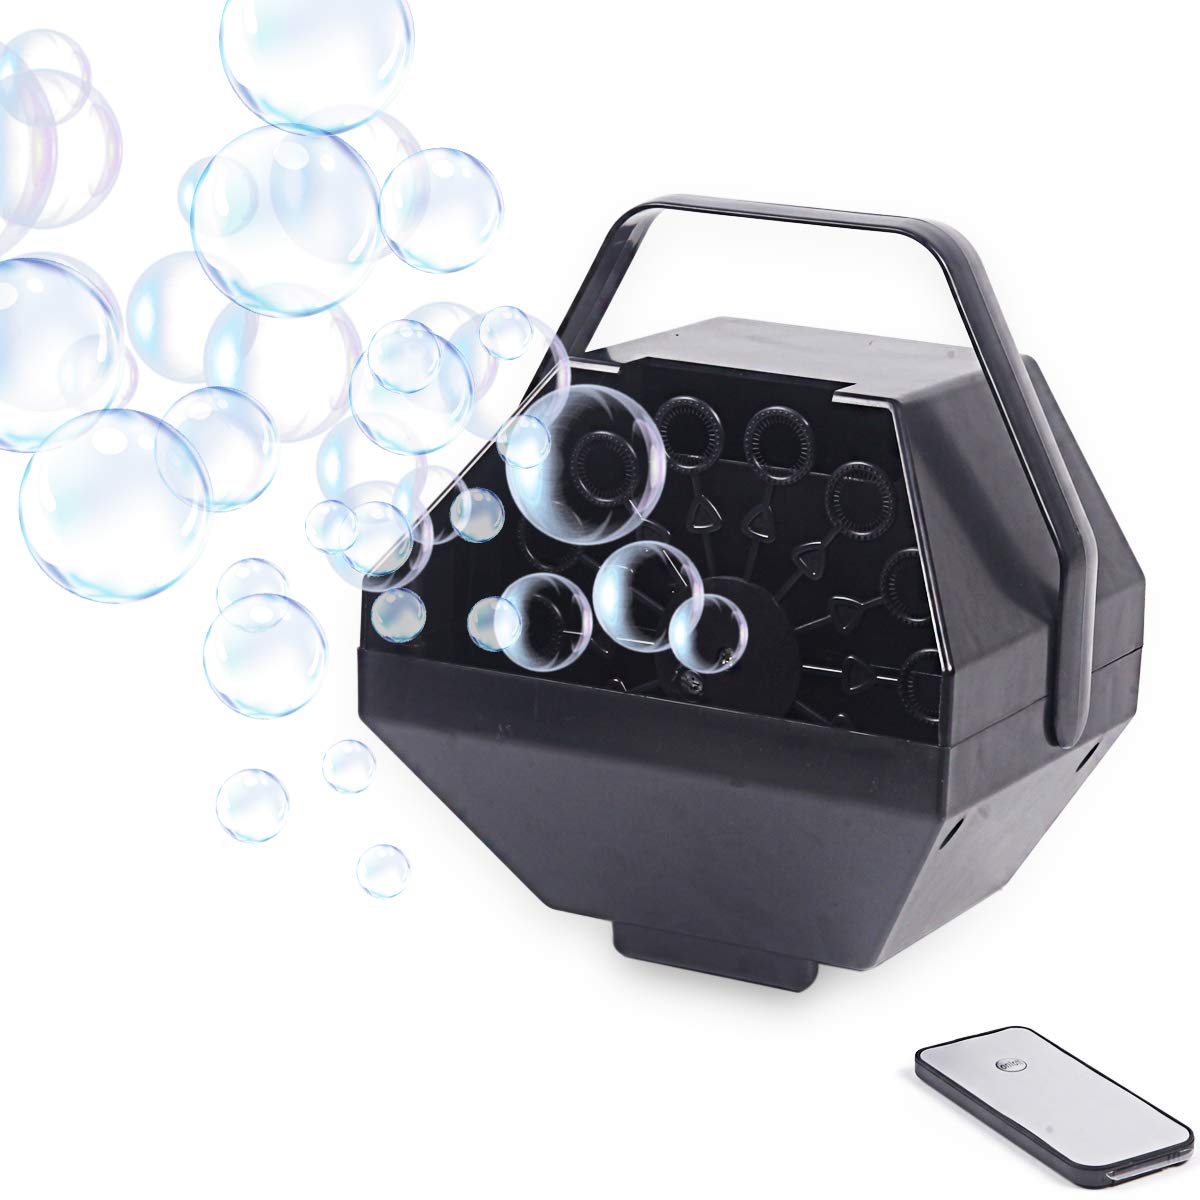 Arelux Upgraded Automatic Portable Bubble Machine |Wireless Remote Control Professional Bubble Maker | High Output Bubble Blower for Party Wedding |Powered by Plug-in Outdoor/Indoor Use